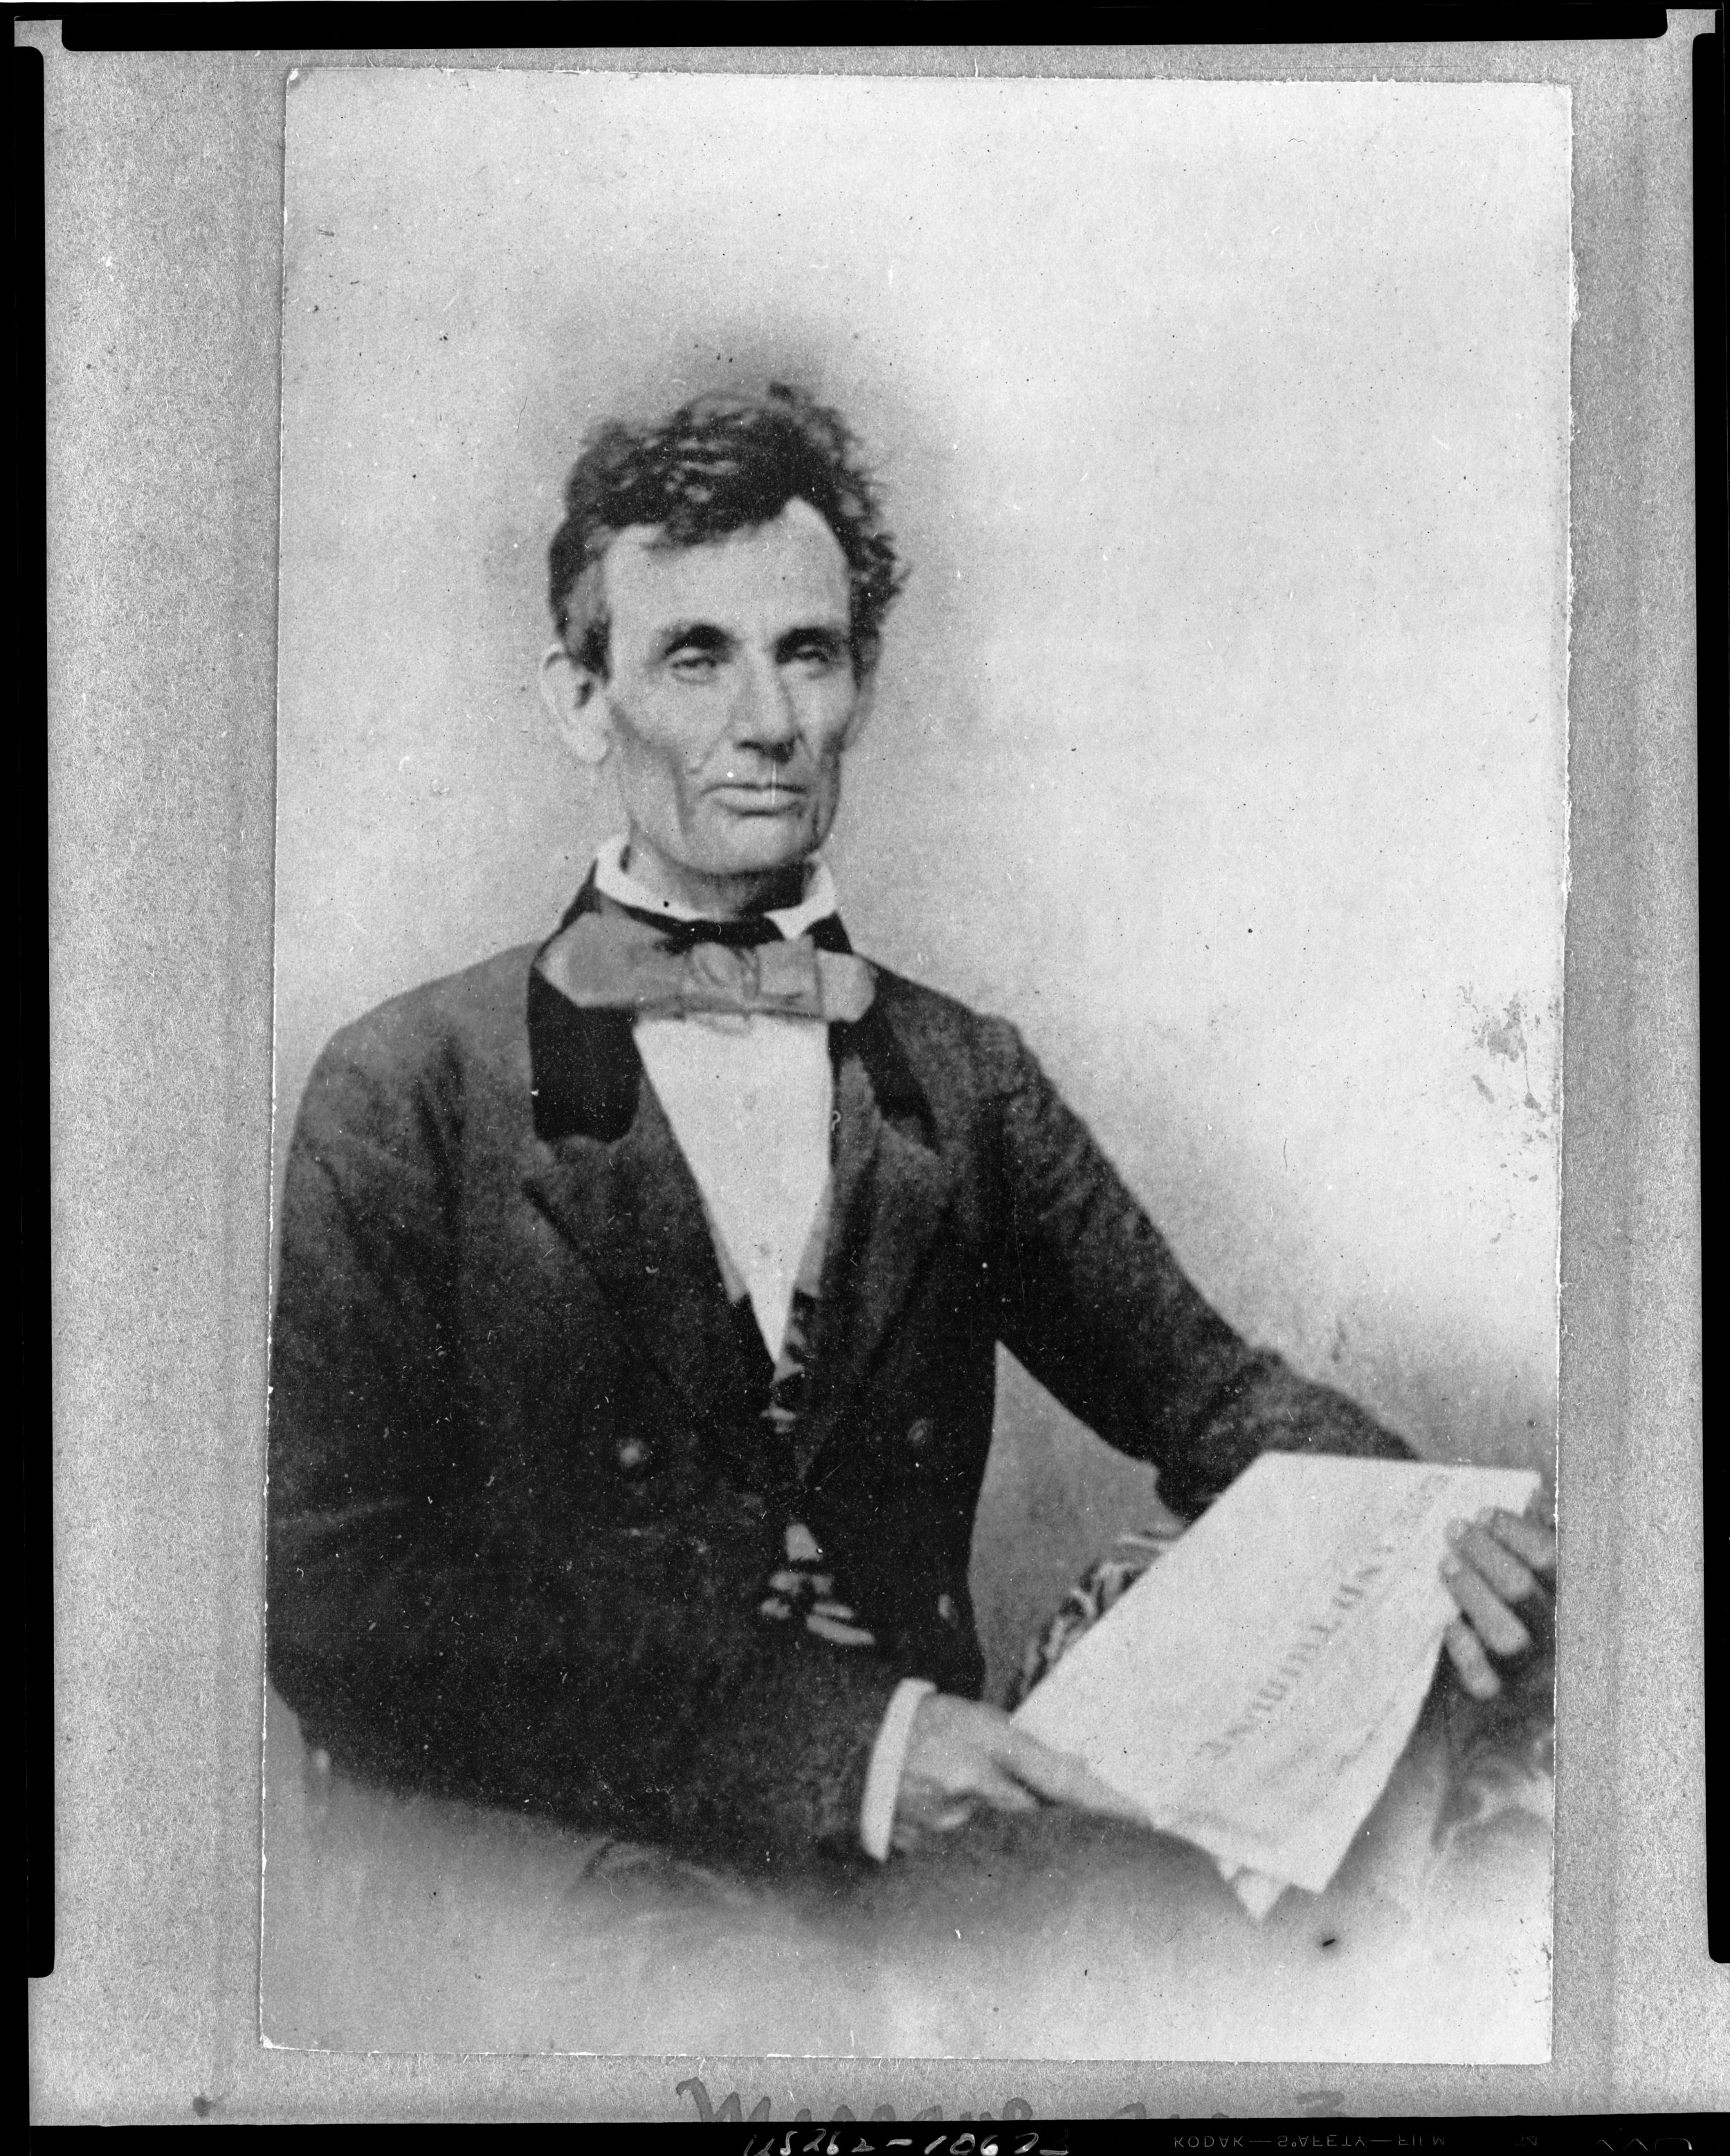 Abraham Lincoln On His Illinois Childhood: 'I Used To Be A